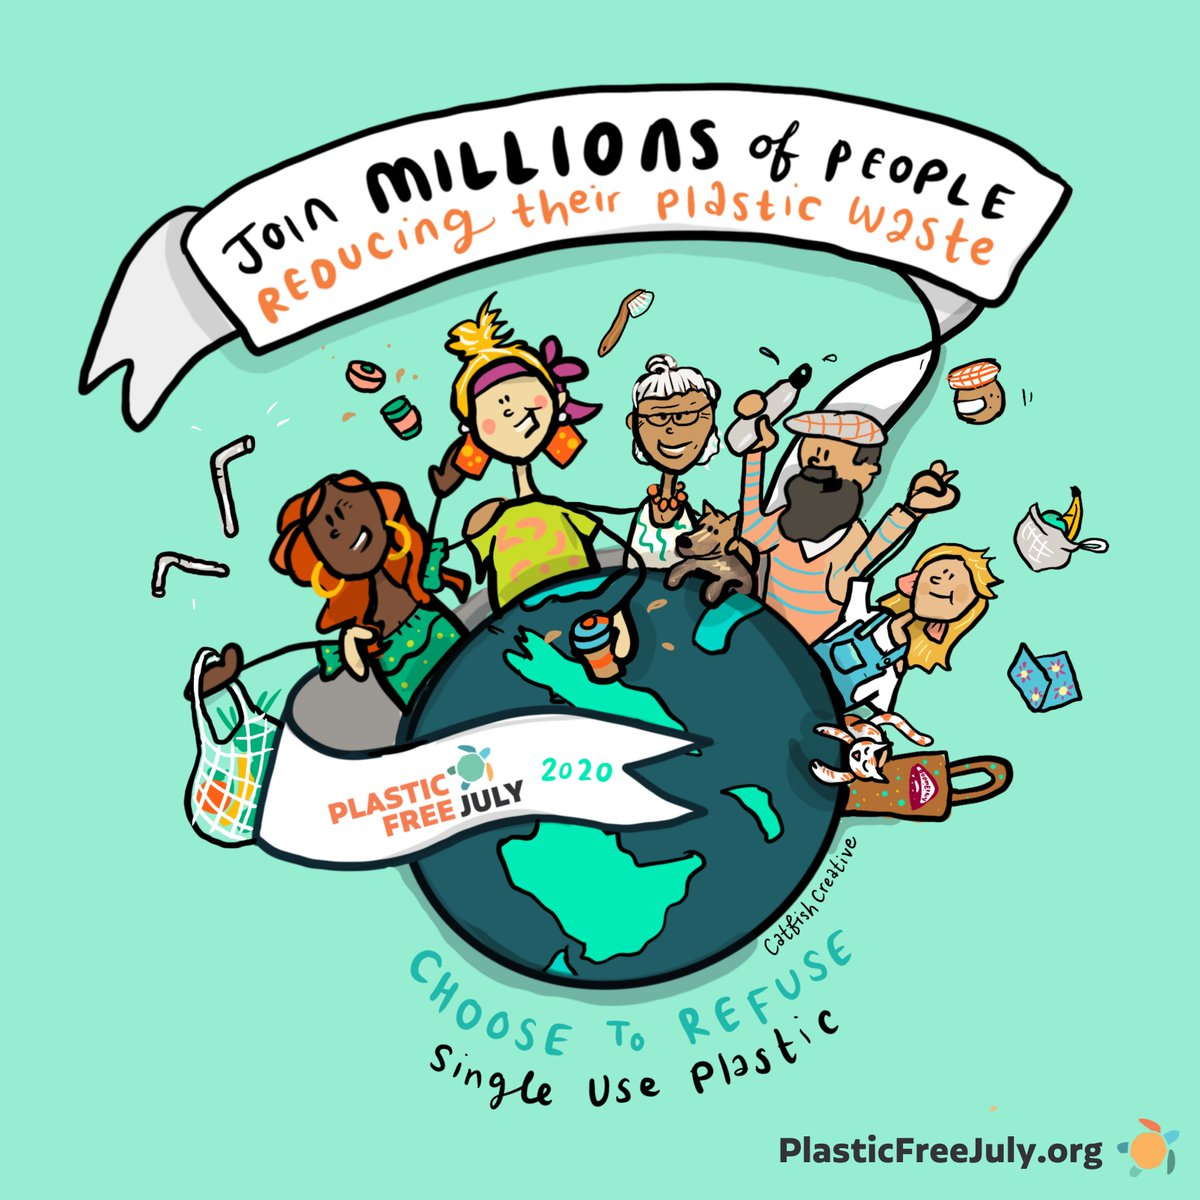 Plastic Free July is a global movement that helps millions of people be part of the solution to plastic pollution – so we can have cleaner streets, oceans, and beautiful communities. Will you be part of #plasticfreejuly by choosing to refuse single-use plastics? https://t.co/TelrNEr563